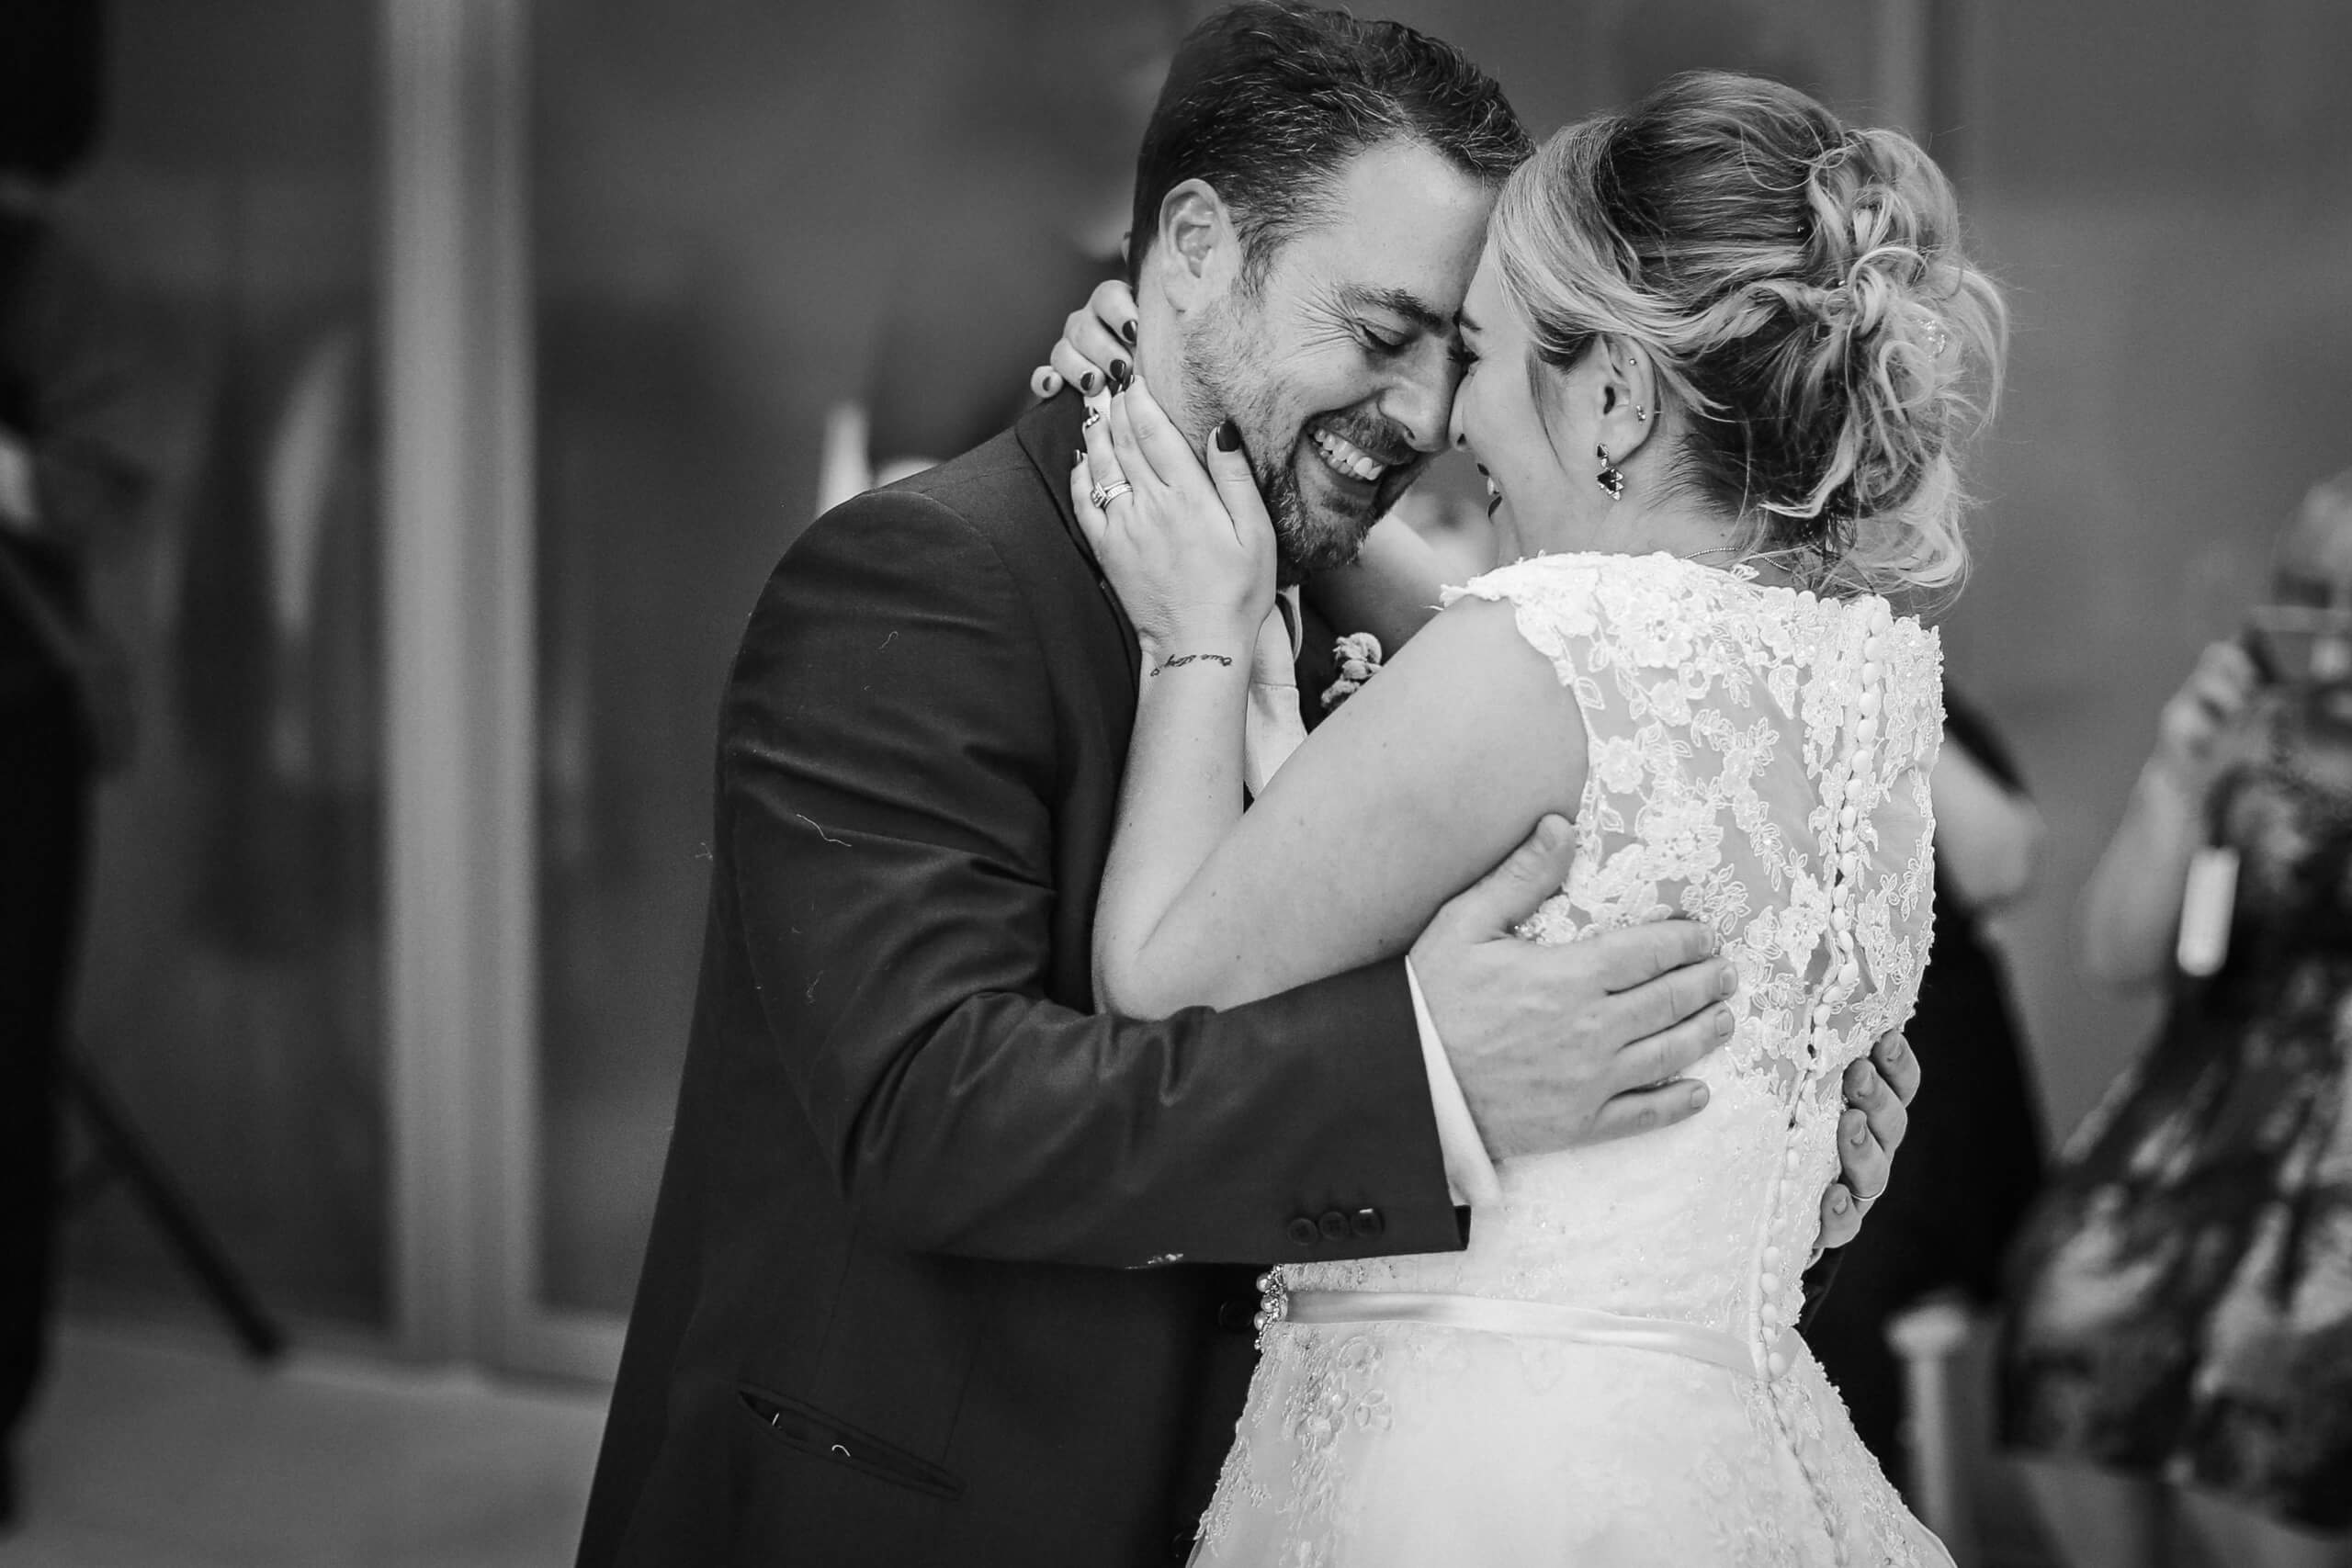 Bride and groom first dance photo Royal Liver Building Liverpool wedding photographer